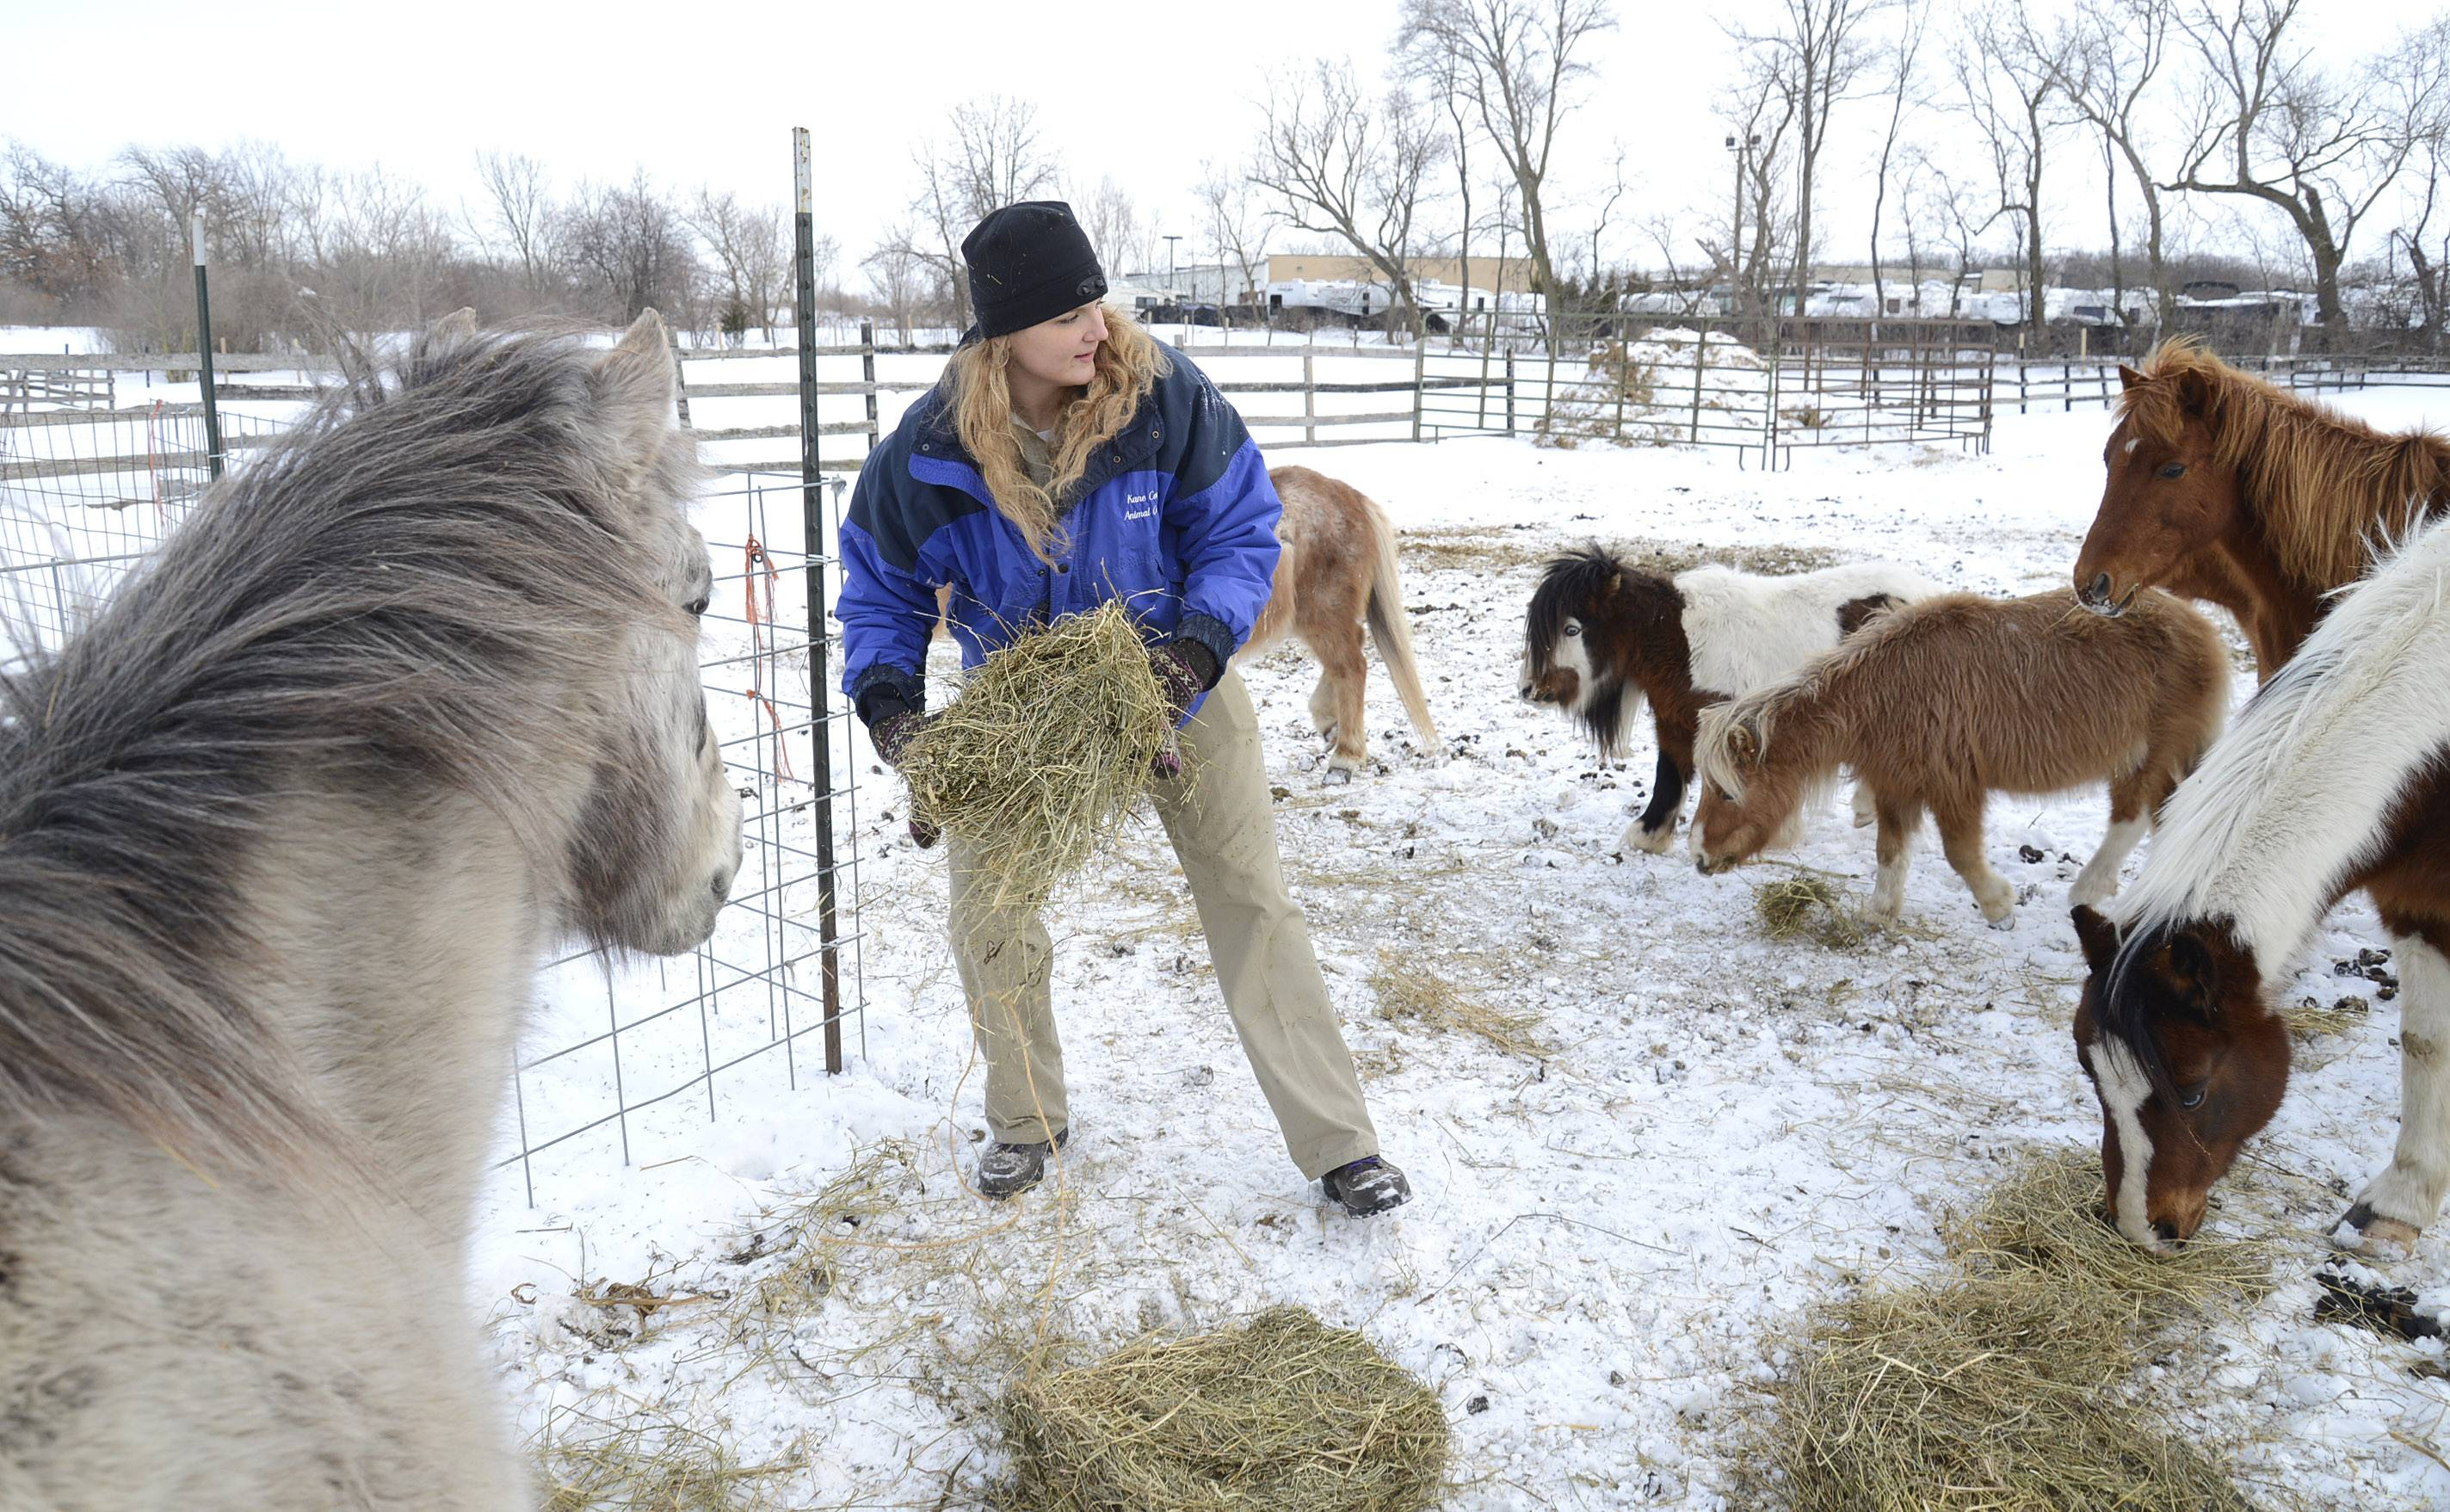 Kane County seeks public's help to move animals off Hampshire farm